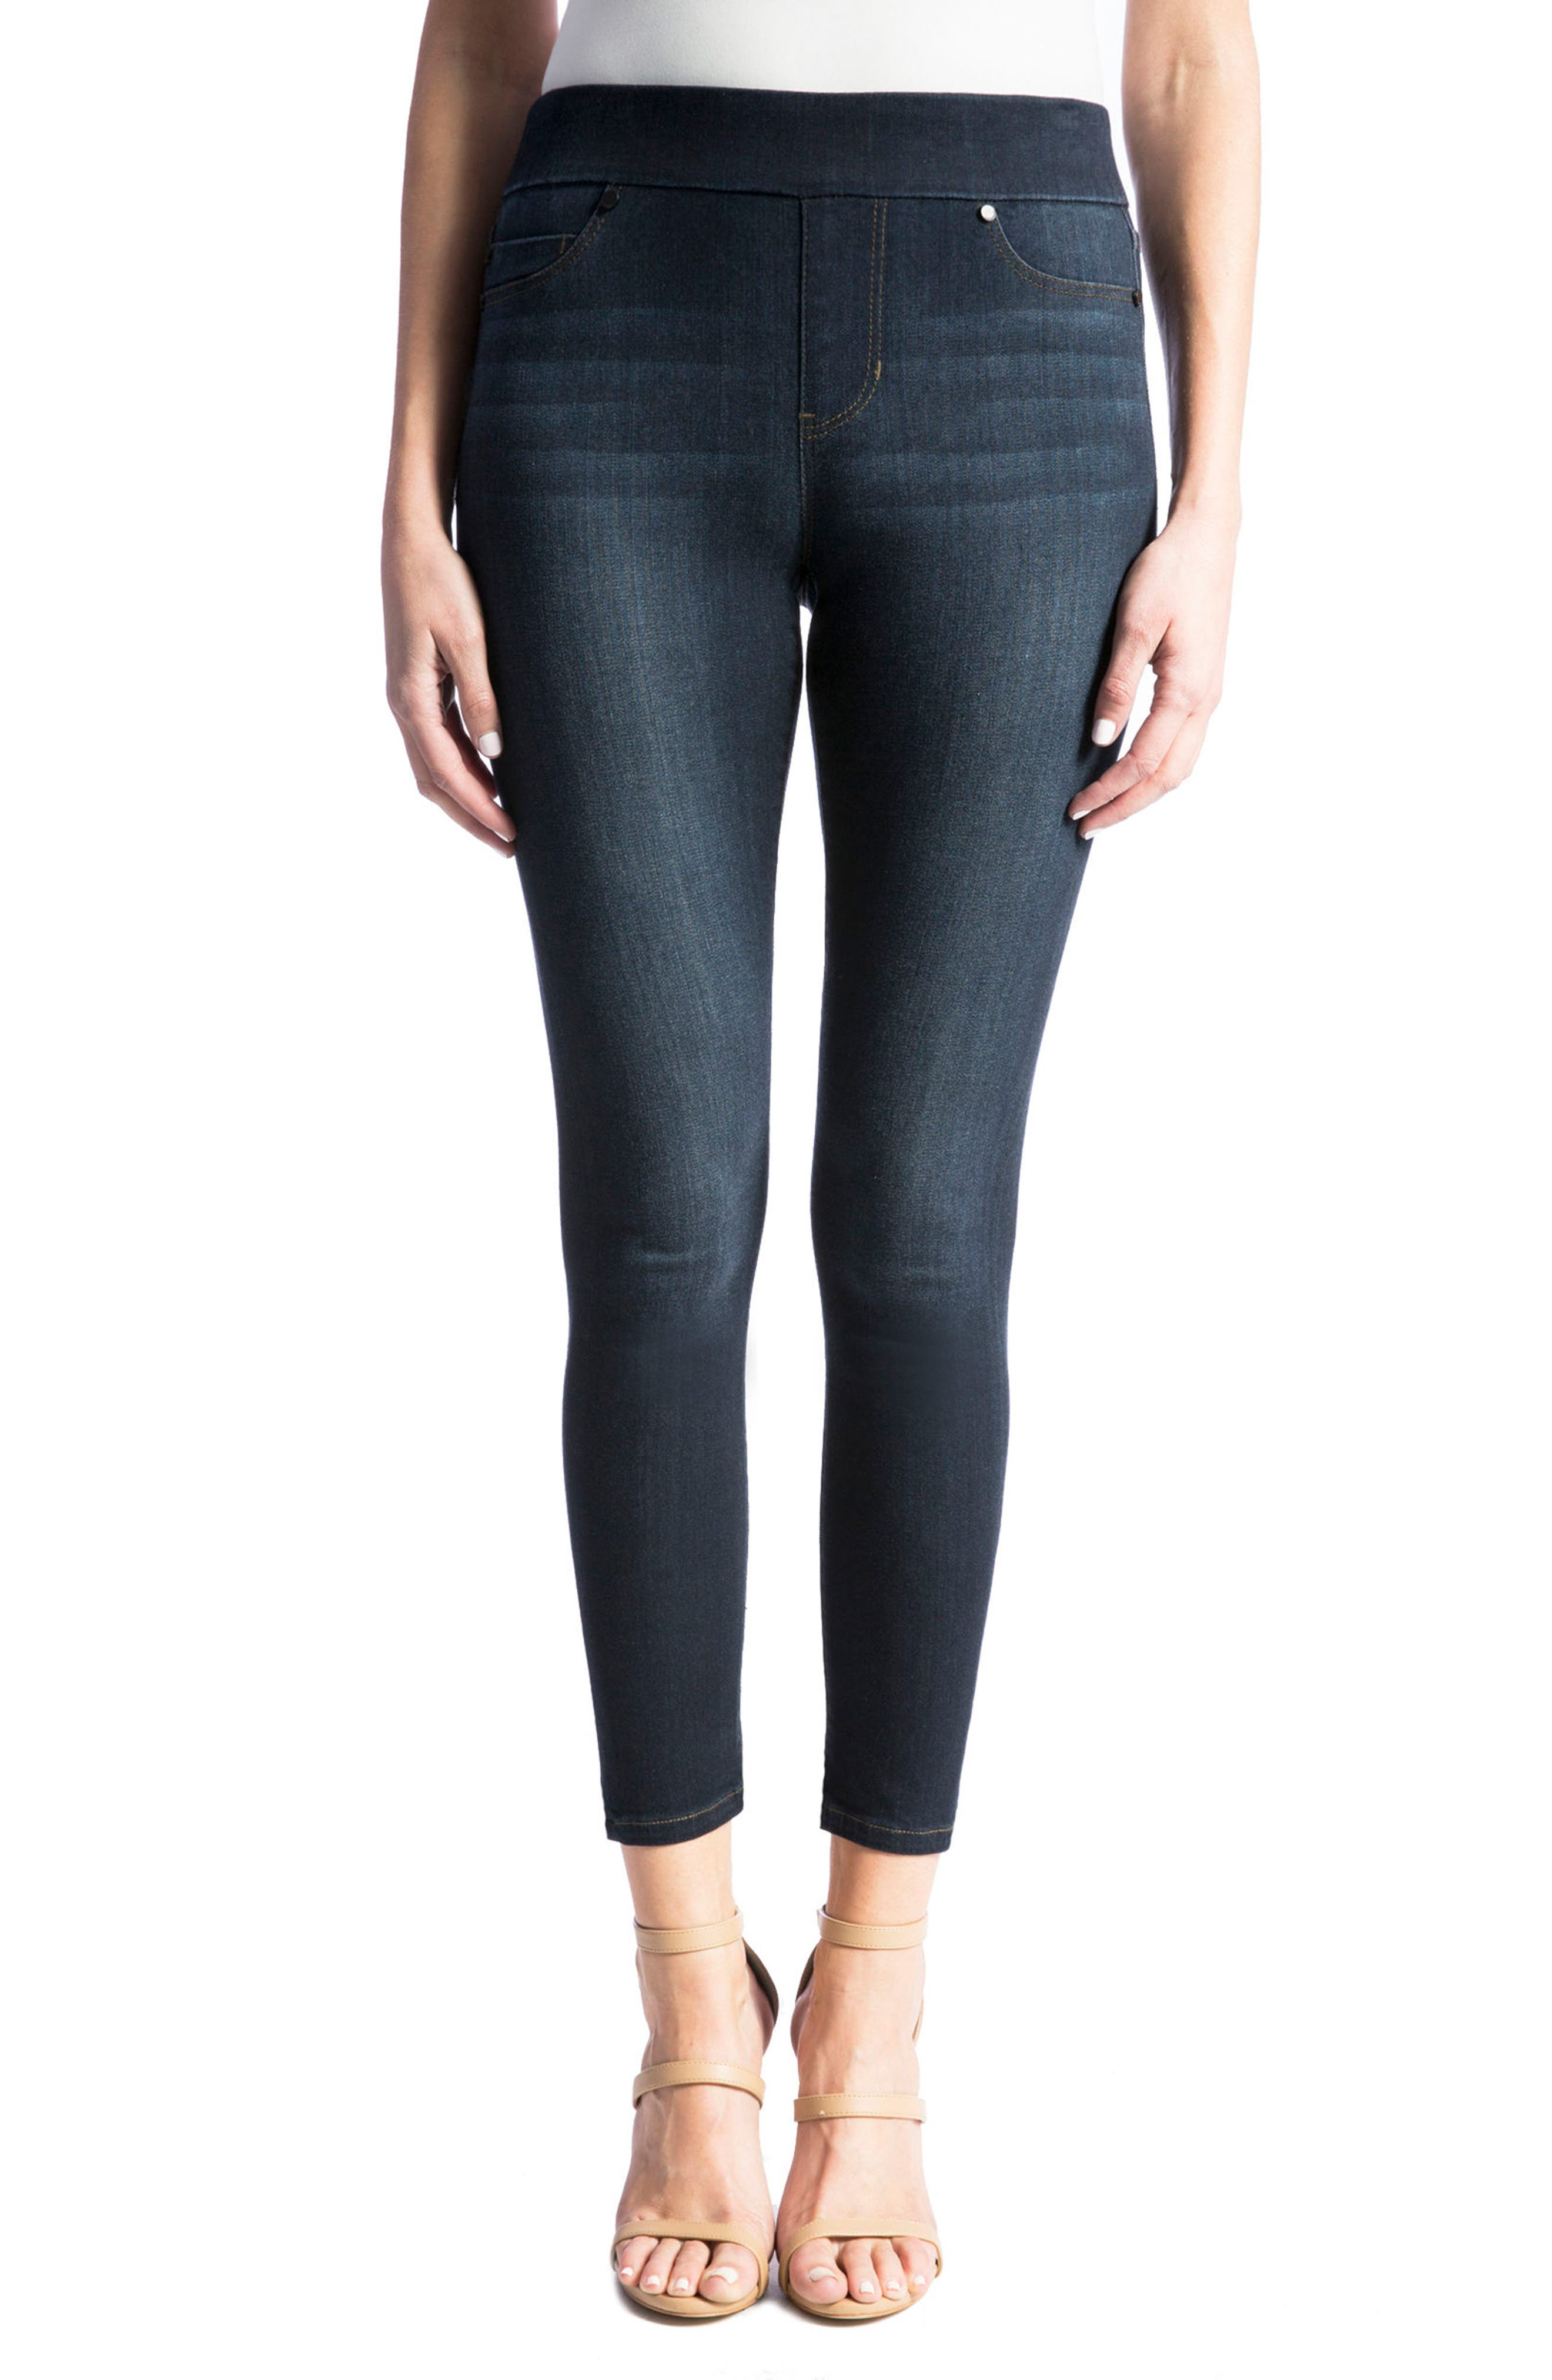 Main Image - Liverpool Jeans Company High Rise Stretch Denim Ankle Leggings (Dynasty Dark) (Regular & Petite)